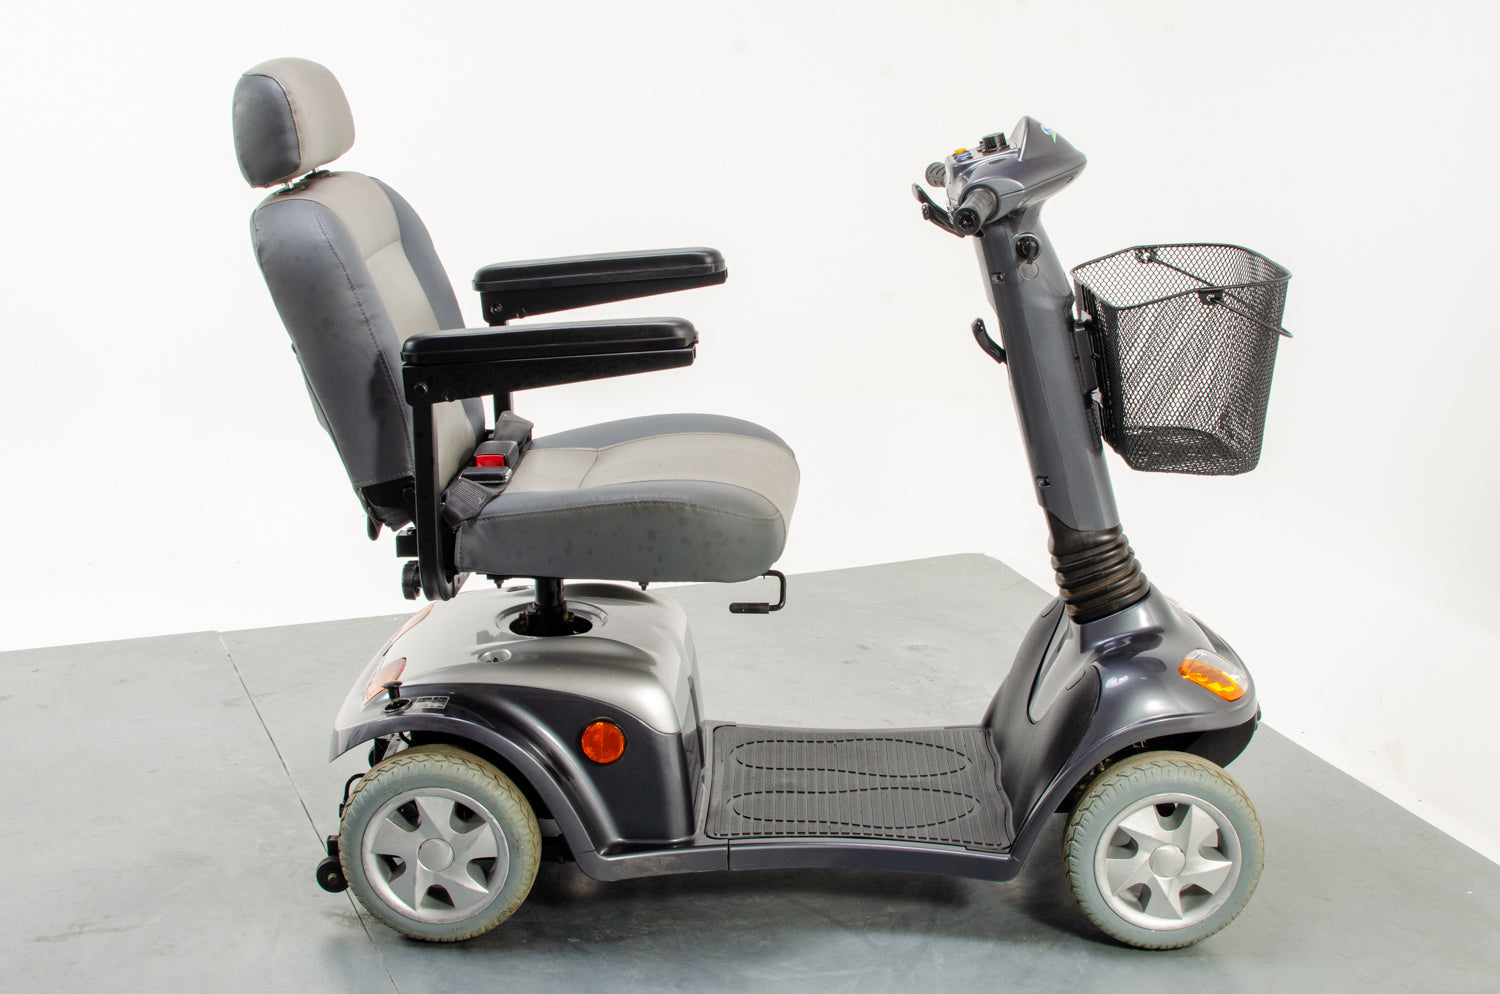 Kymco Super 4 Used Mobility Scooter Pavement Solid Tyres ForU 4mph Lights